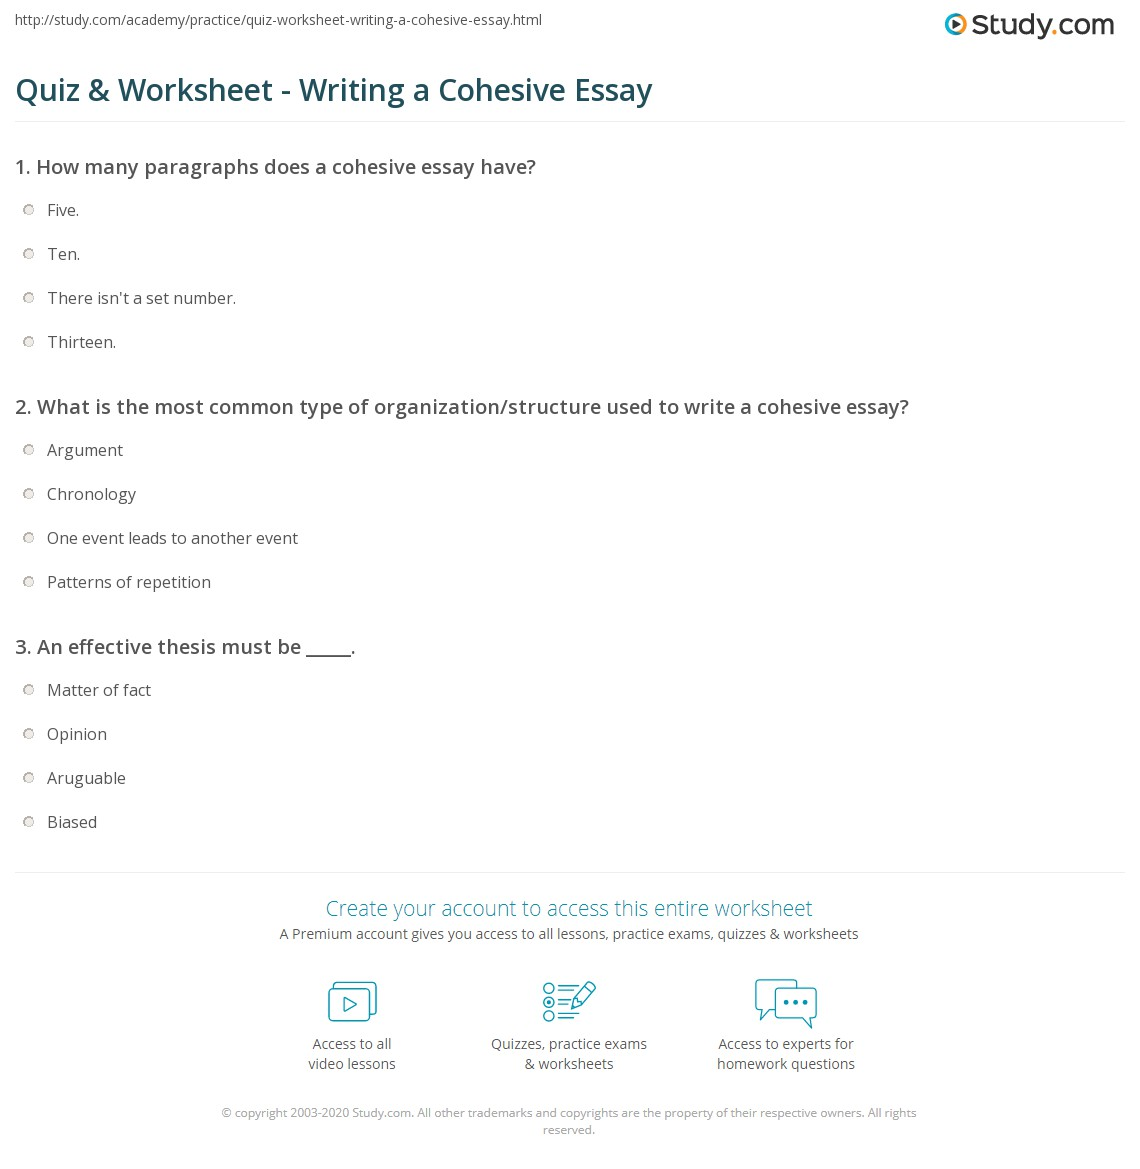 quiz worksheet writing a cohesive essay com what is the most common type of organization structure used to write a cohesive essay